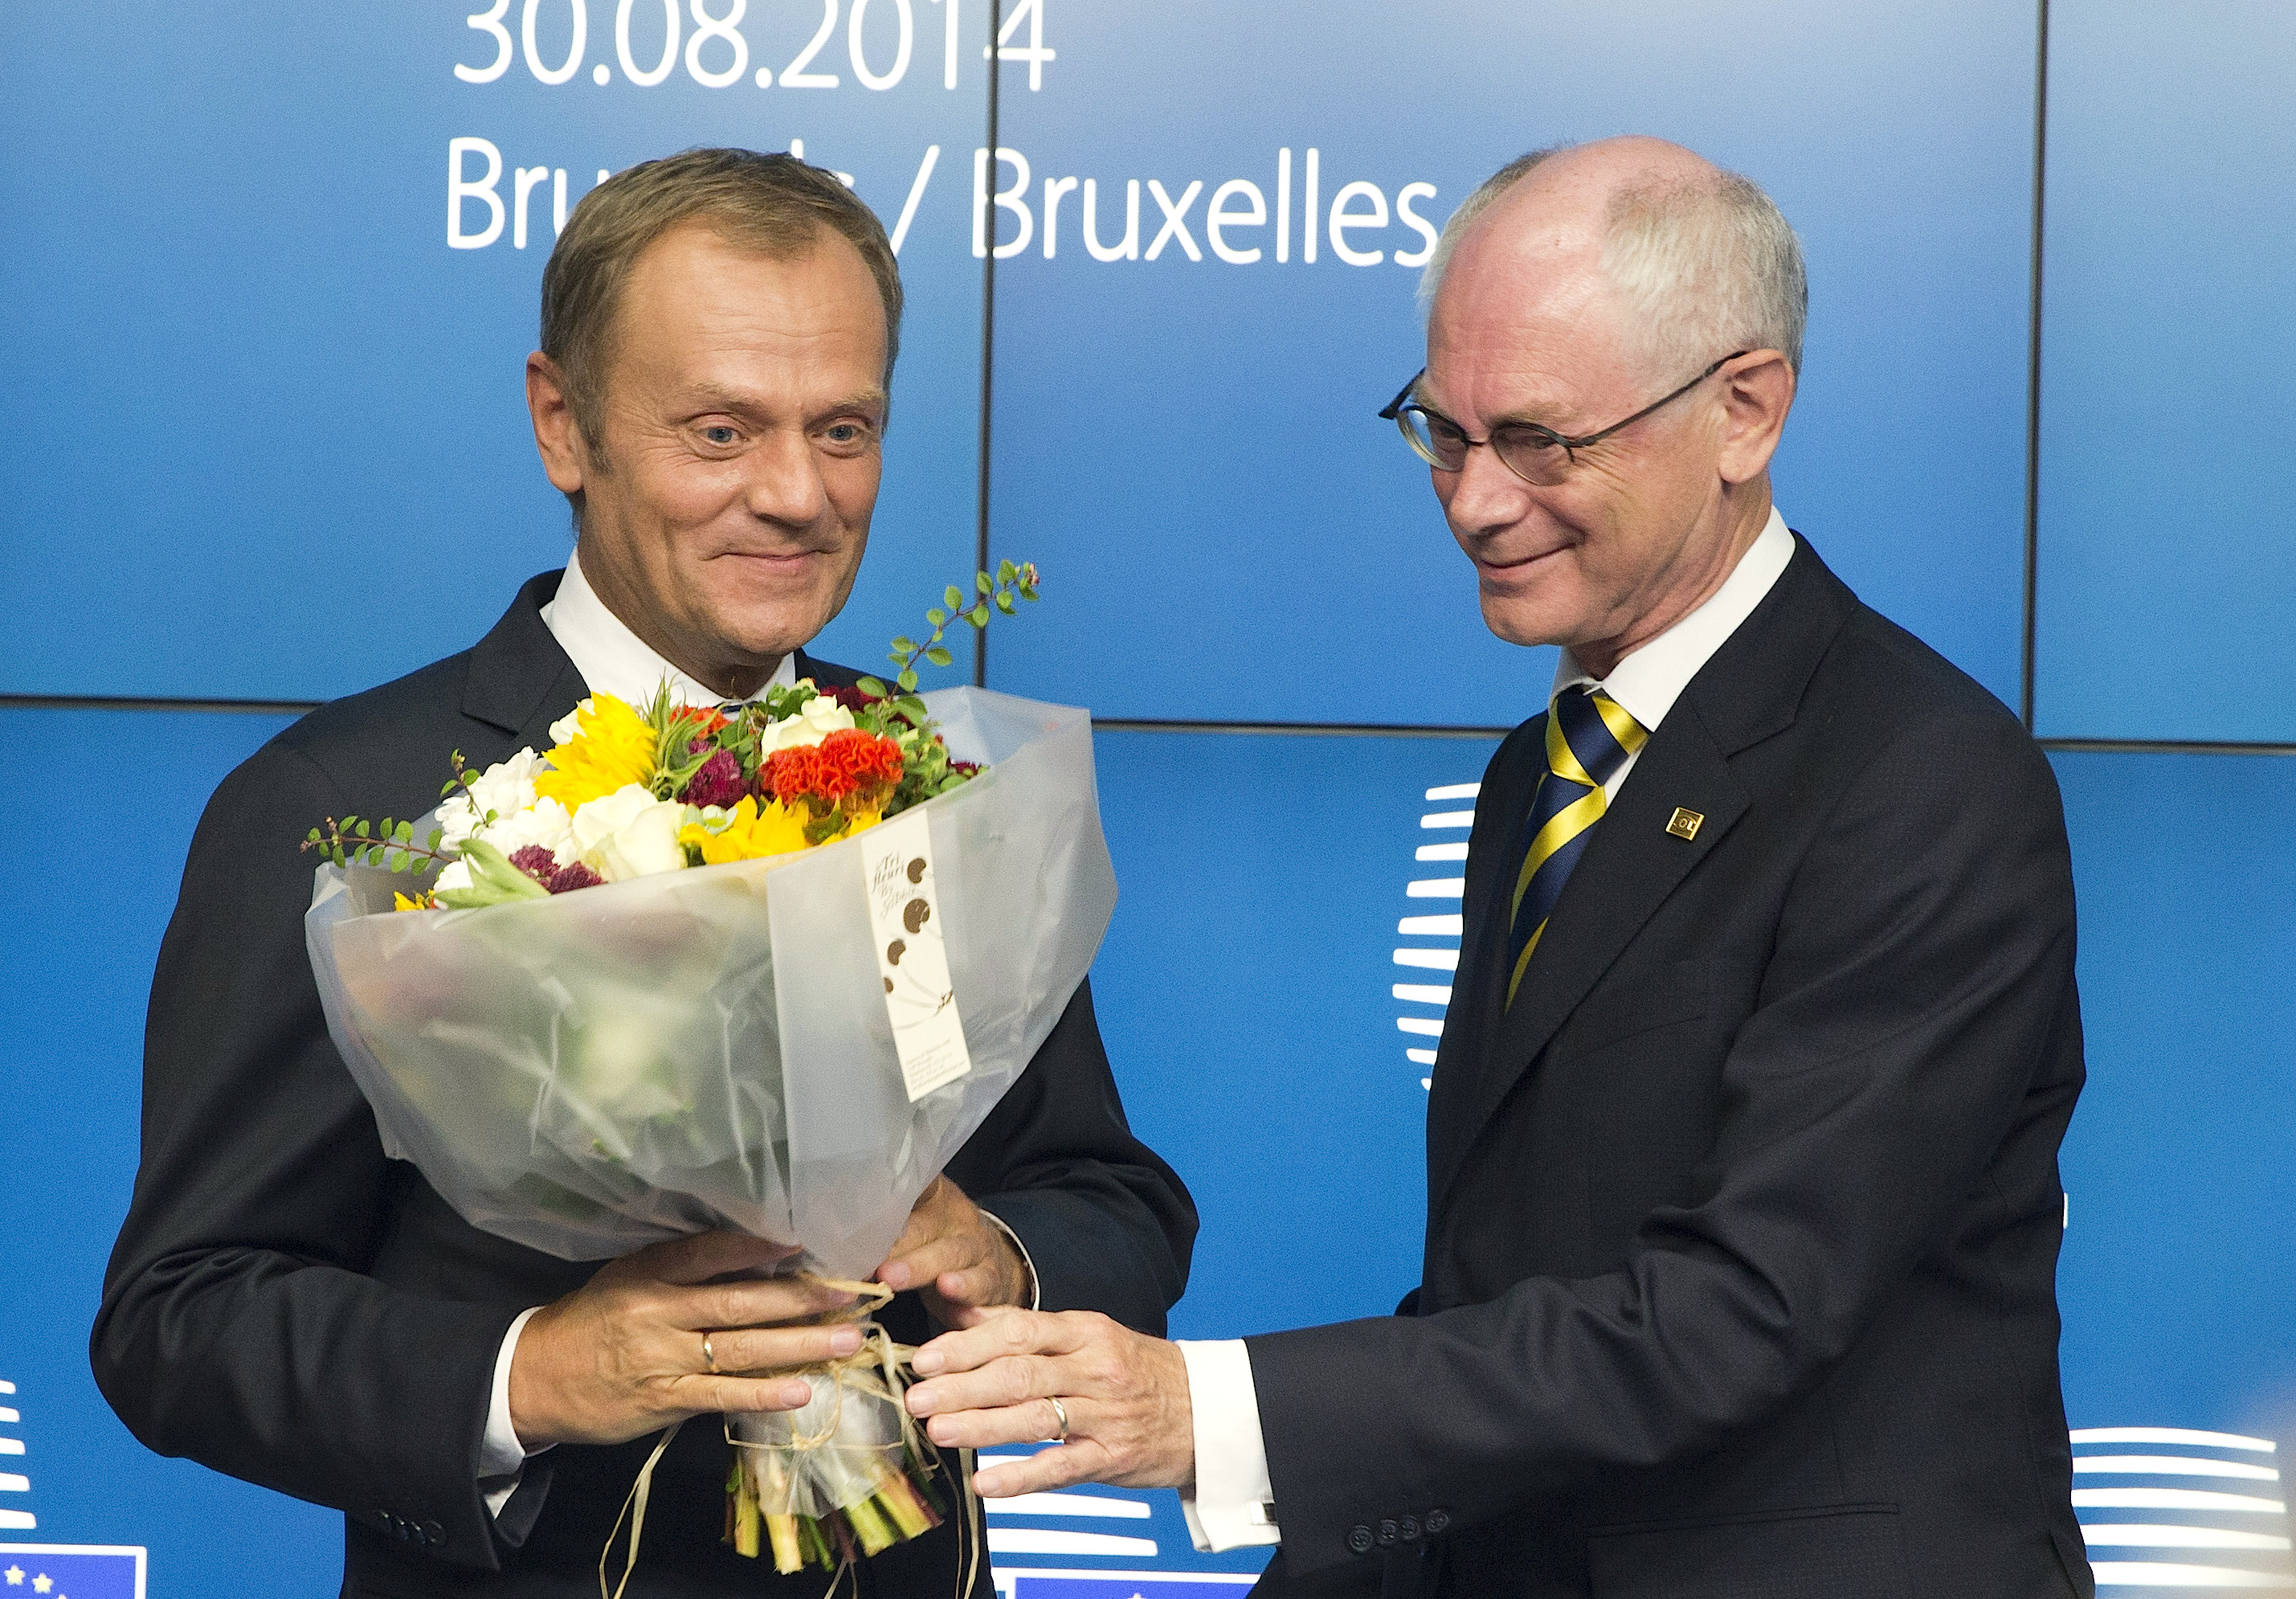 Donald Tusk and Herman Van Rompuy